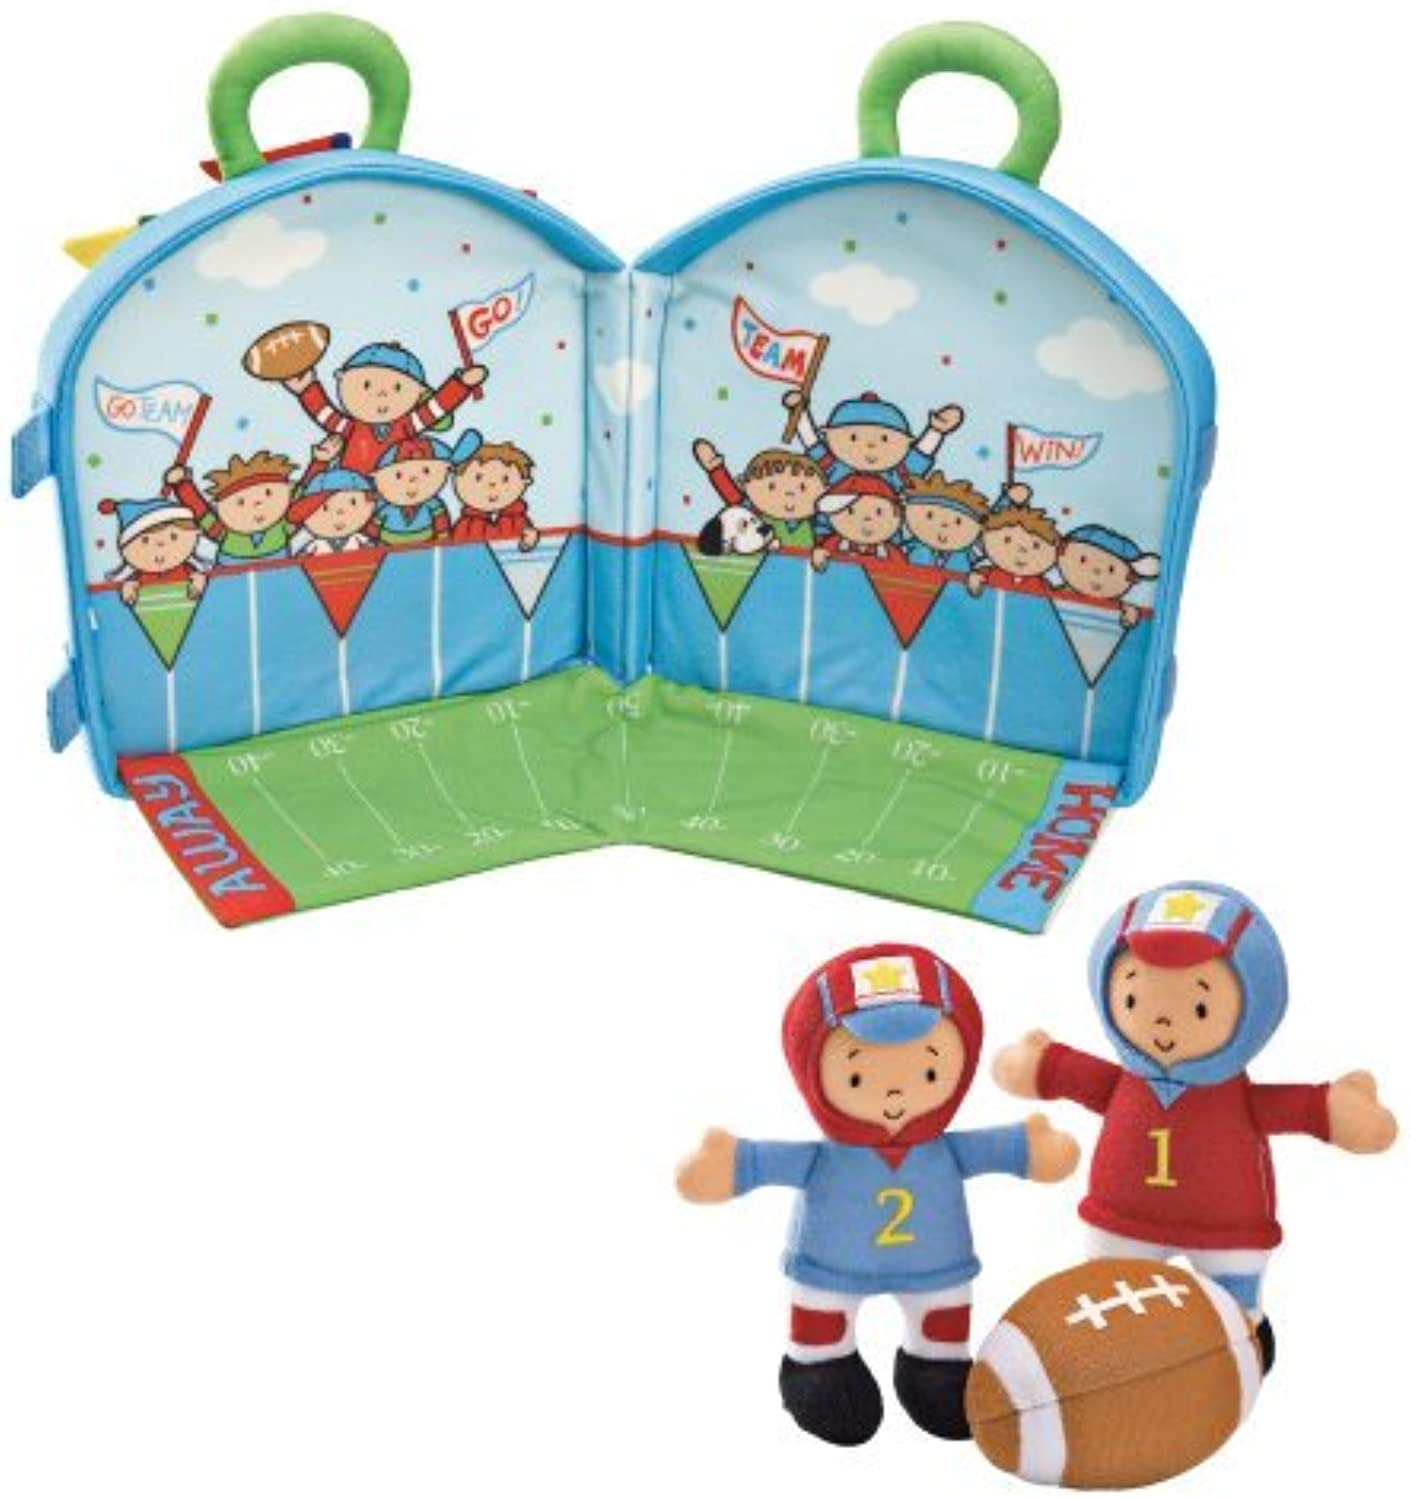 Little All Star Fuball Stadium Spielzeug-Set 8Inch